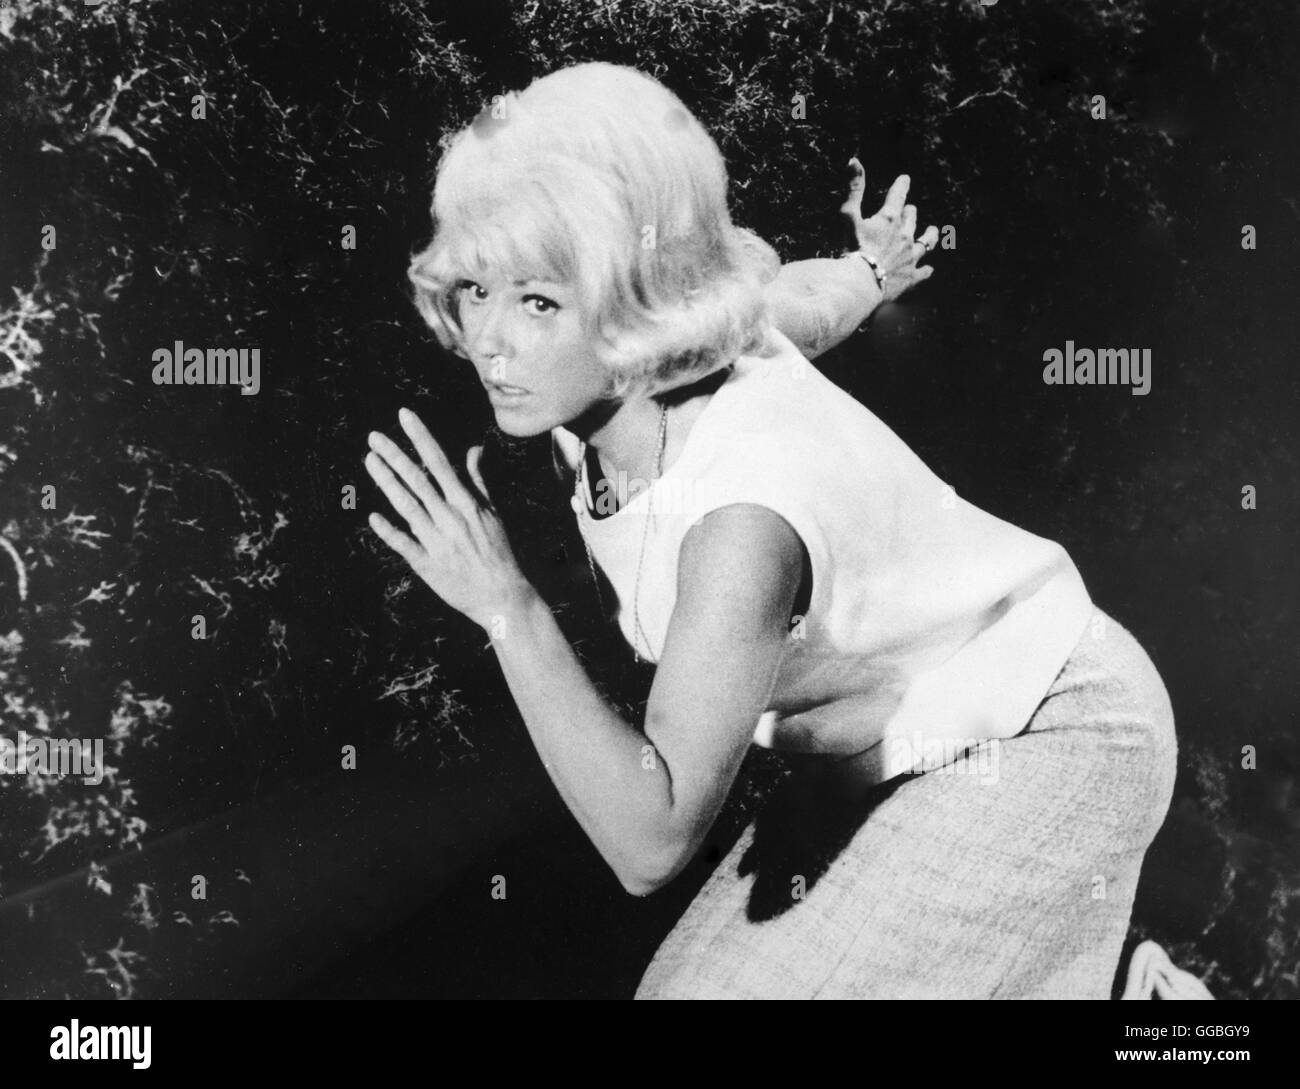 Move over, Darling / DORIS DAY in 'Move over, Darling' (1963) BB36046 - Stock Image